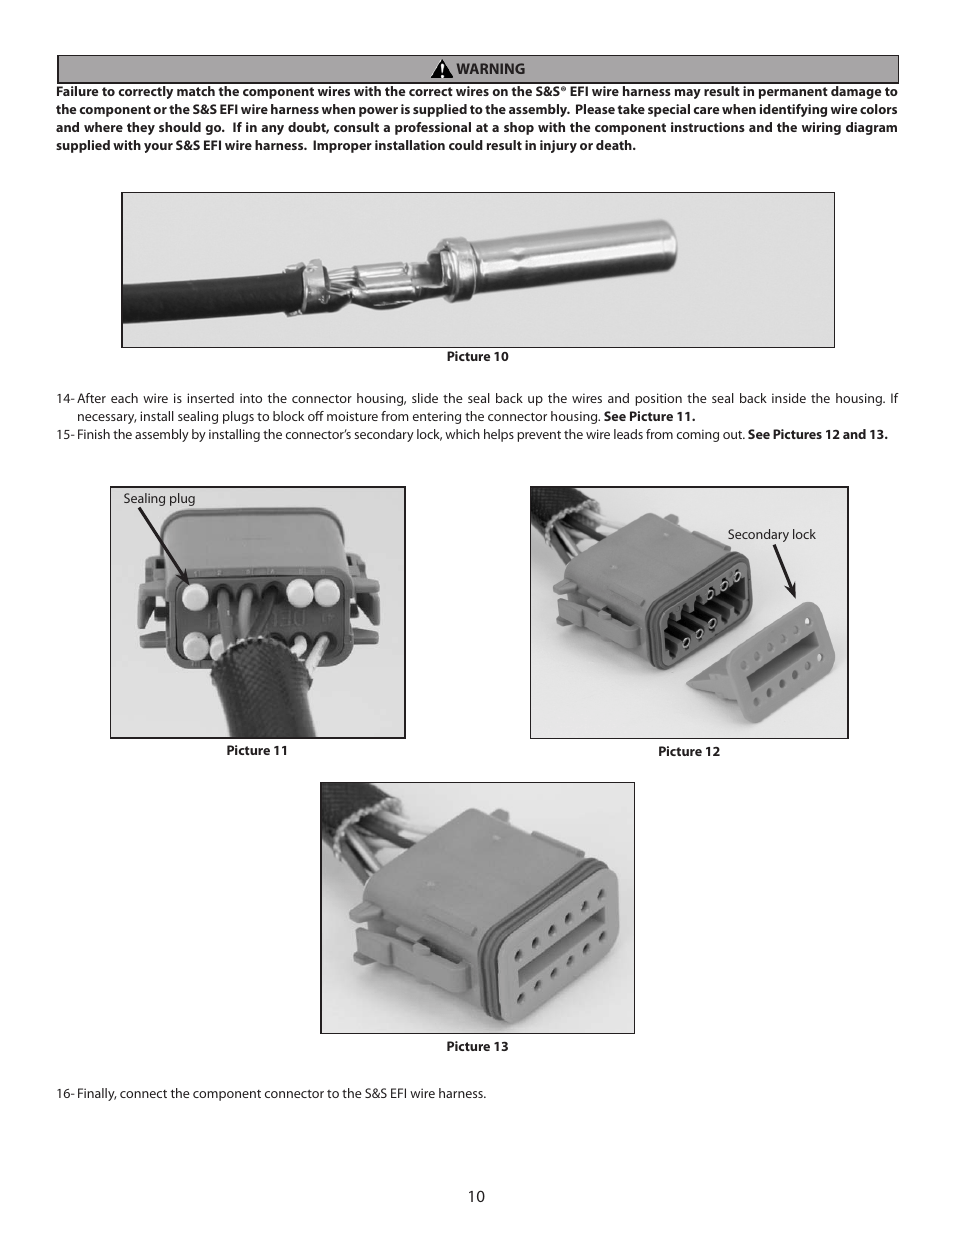 medium resolution of s s cycle efi wire harness for custom frame applications using s s fuel injected engines and delphi style modules user manual page 10 16